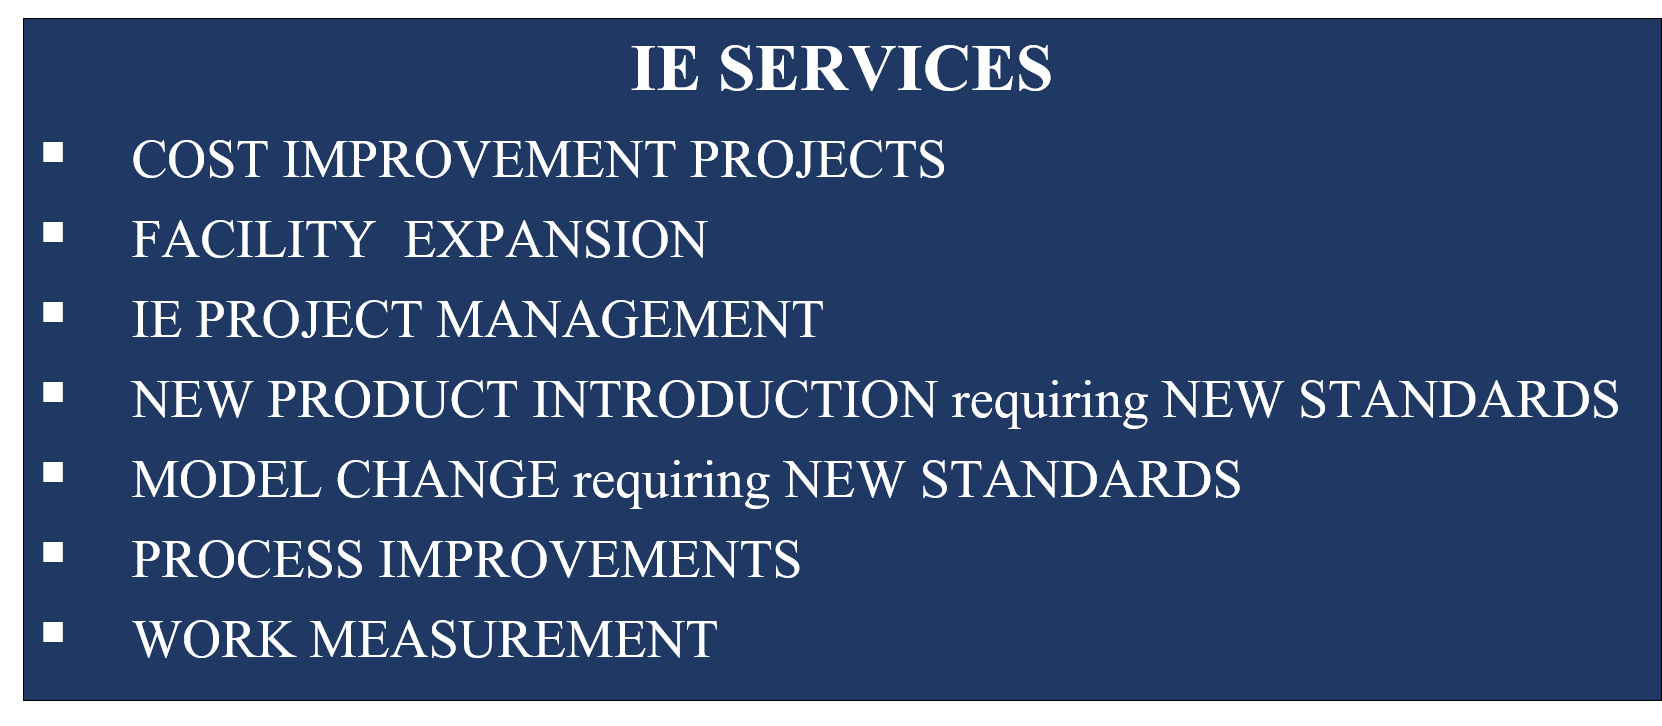 INDUSTRIAL ENGINEERING PROJECT MANAGEMENT BANNER.png